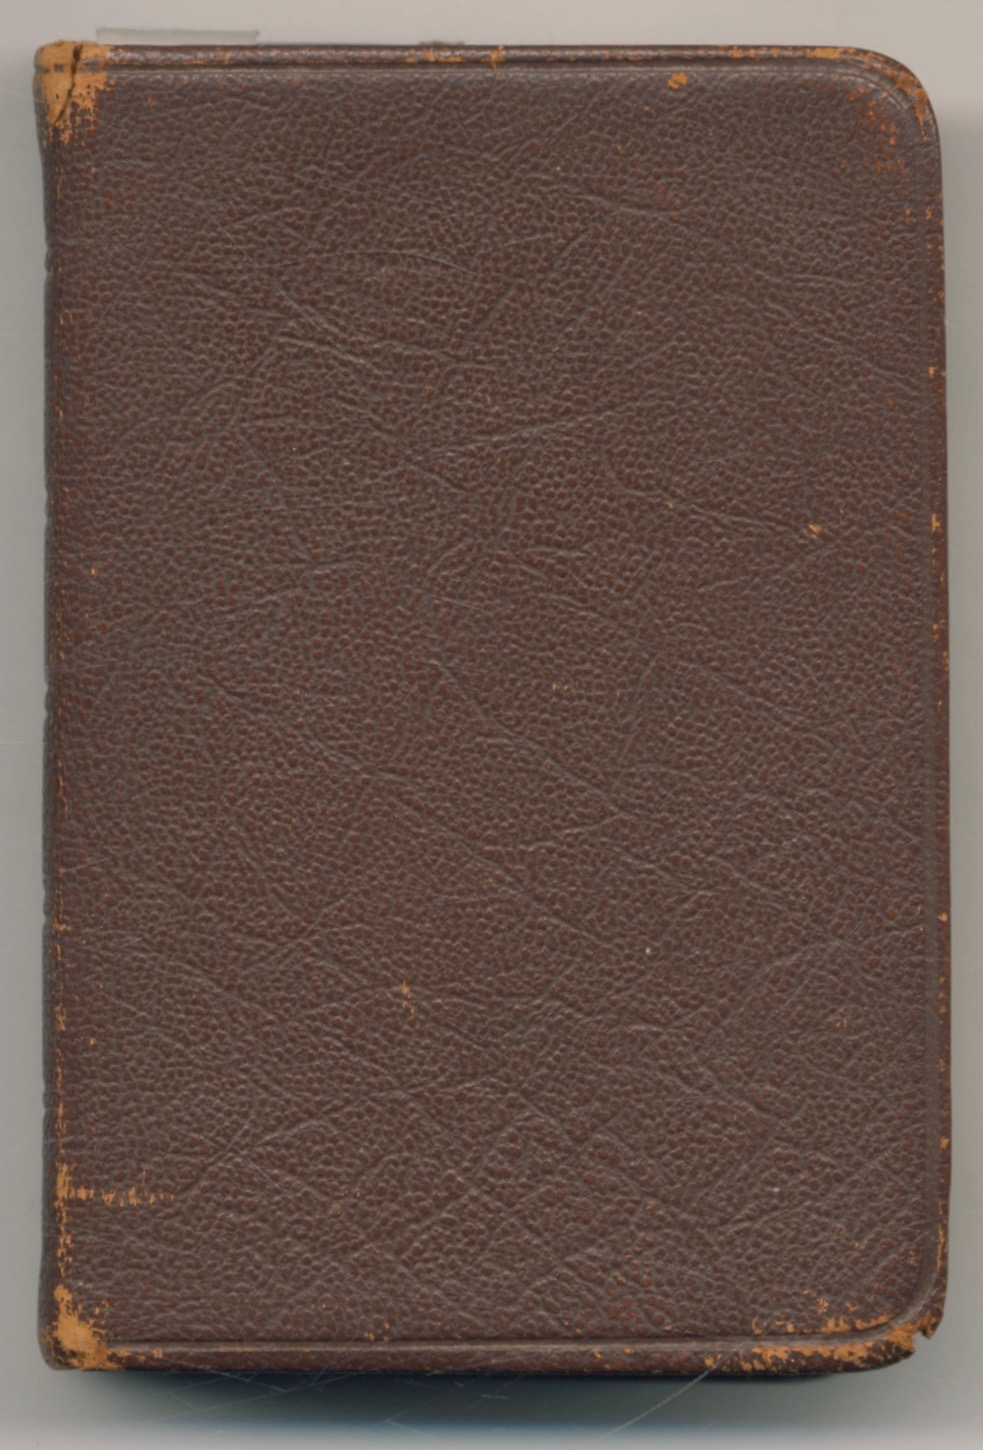 The Holy Bible Containing The Old And New Testaments Translated Out Of The Original Tongues And With The Former Translations Diligently Compared And Revised By His Majesty's Special Command